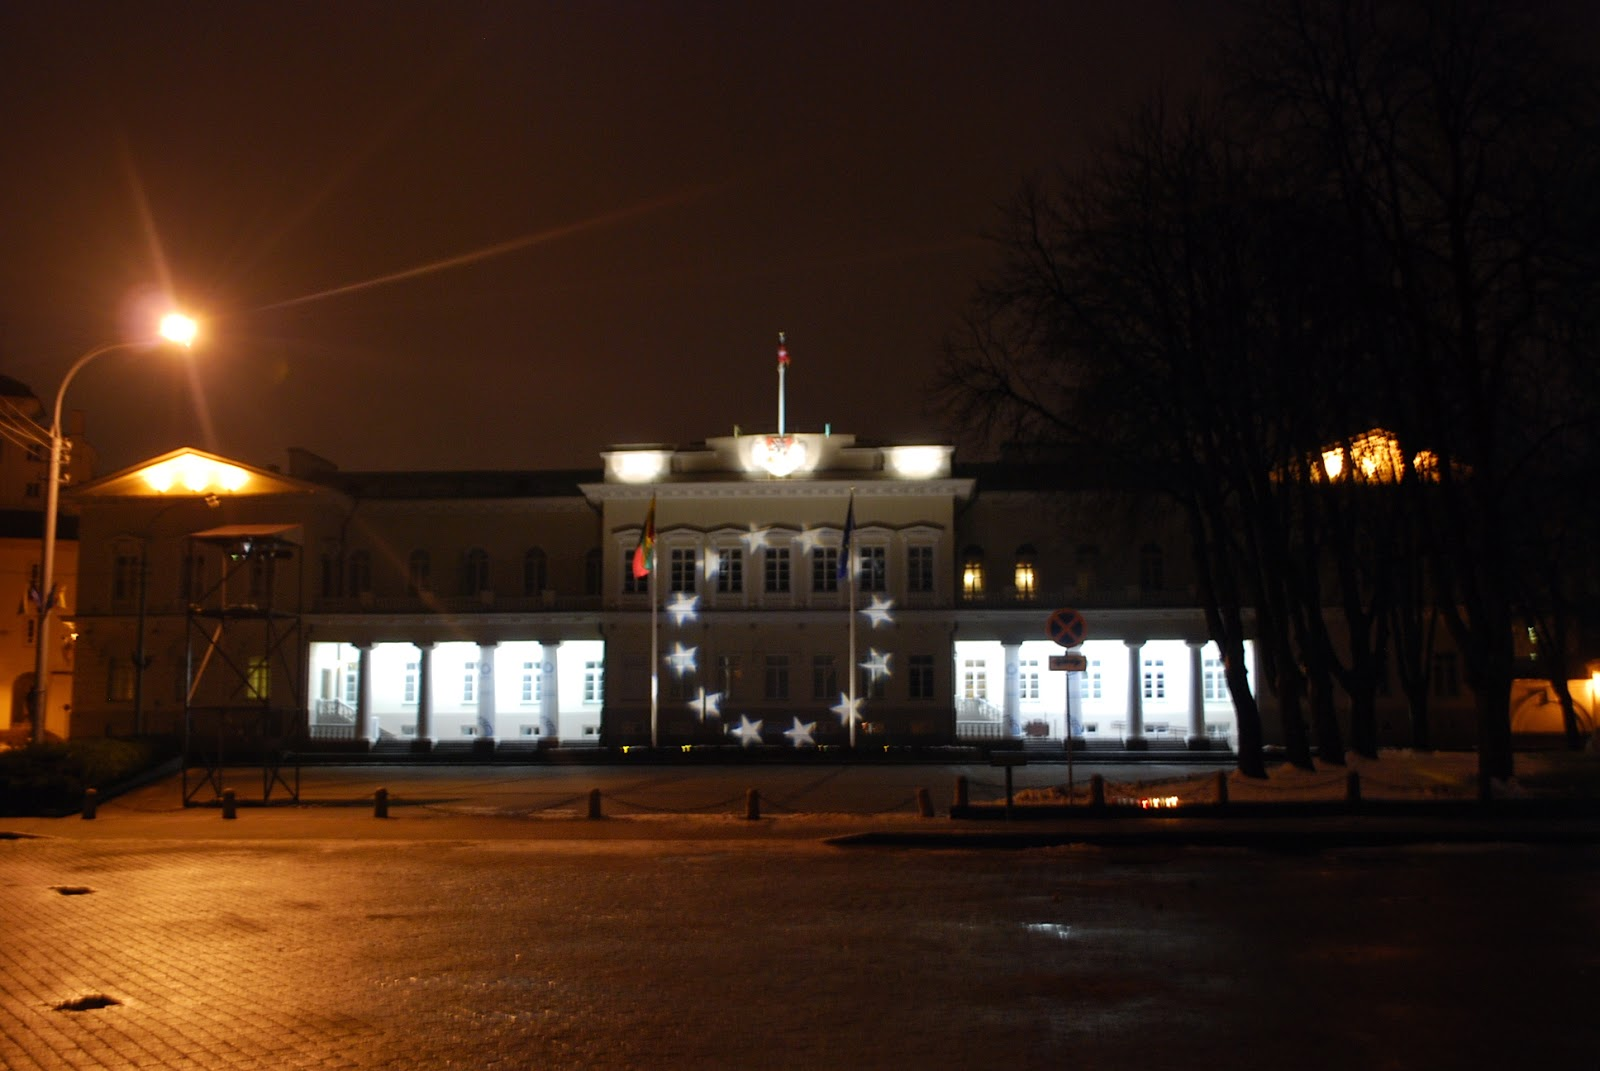 Вечерний Вильнюс, Литва. Vilnius at night, Lithuania.